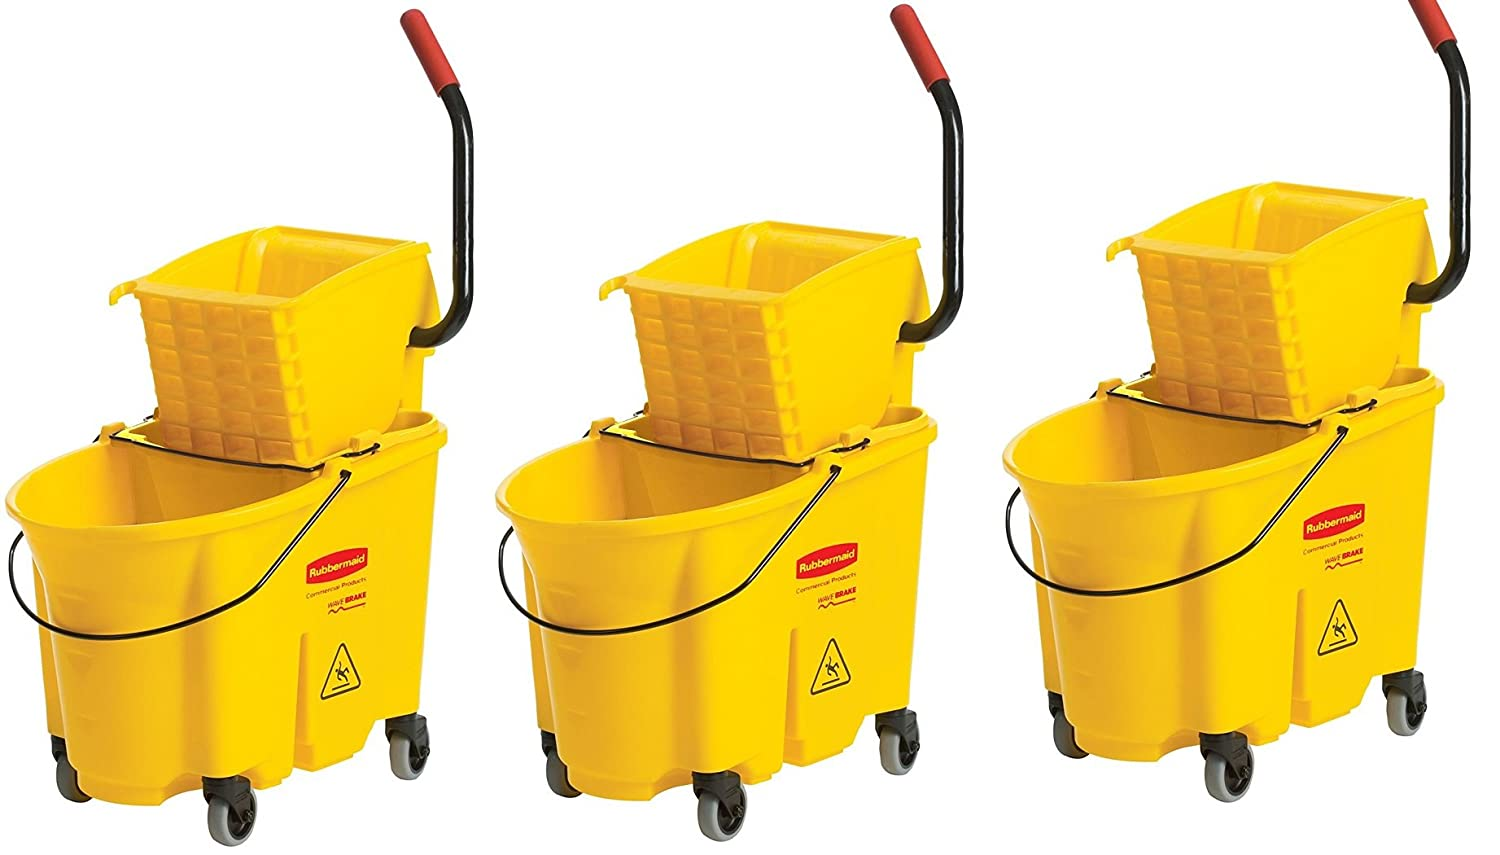 Rubbermaid Commercial fg758088yel Wavebreak Side押しコンボ 3,,Buckets B075CV12S7  3,,Buckets